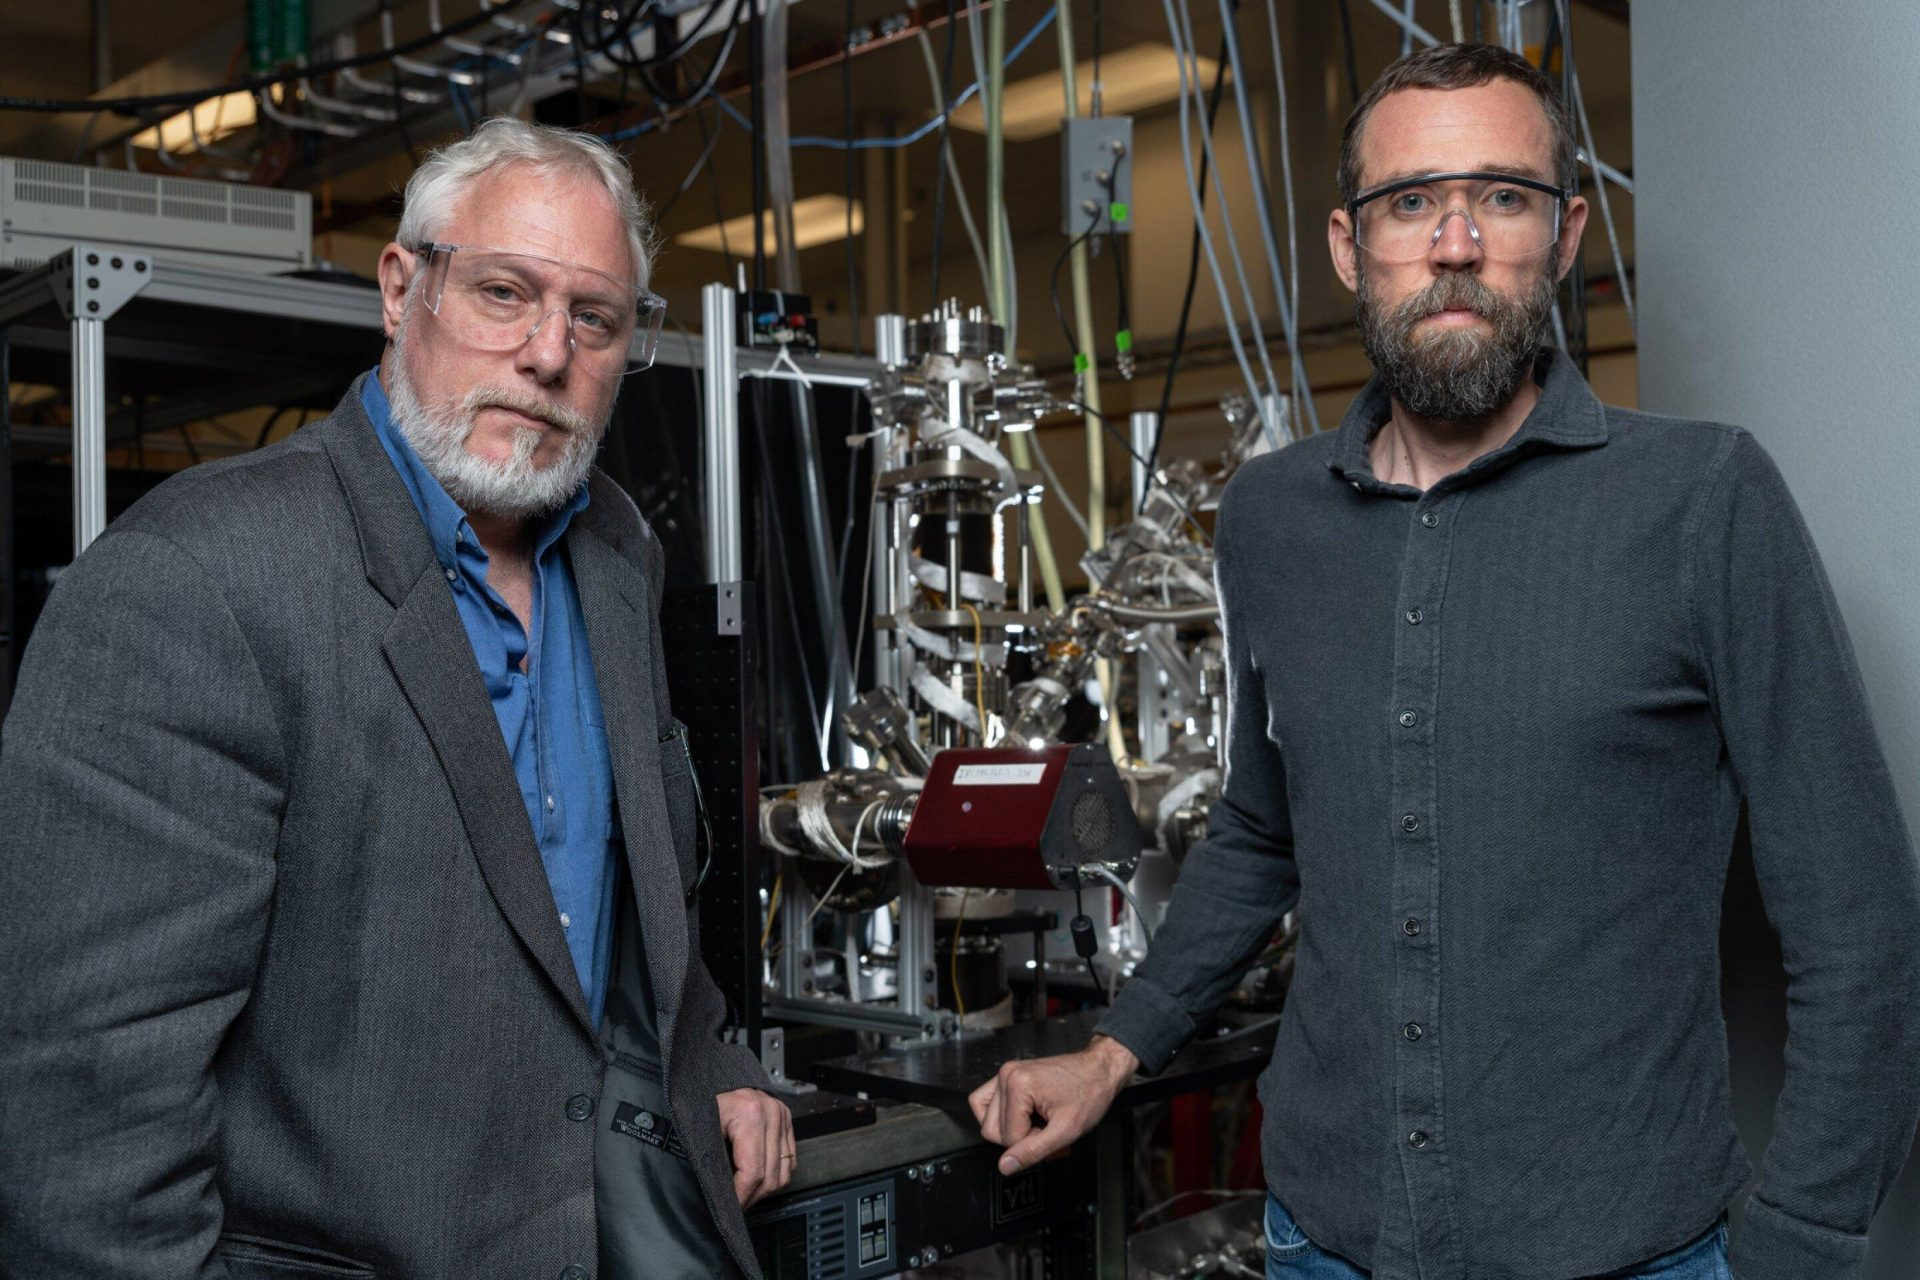 Scientists model a feasible chemical reaction, in which the Vulcan heat on Mercury could help it make ice at its poles: Georgia Tech's Thom Orlando (left) is the new Mercury study's principal investigator. Brant Jones (right) is first author. The two are also engineering the same chemistry in the lab to propose it as a method of making water for missions to the moon and to Mars. Orlando co-founded the Georgia Tech Center for Space Technology and Research. (Image Georgia Tech / Rob Felt)